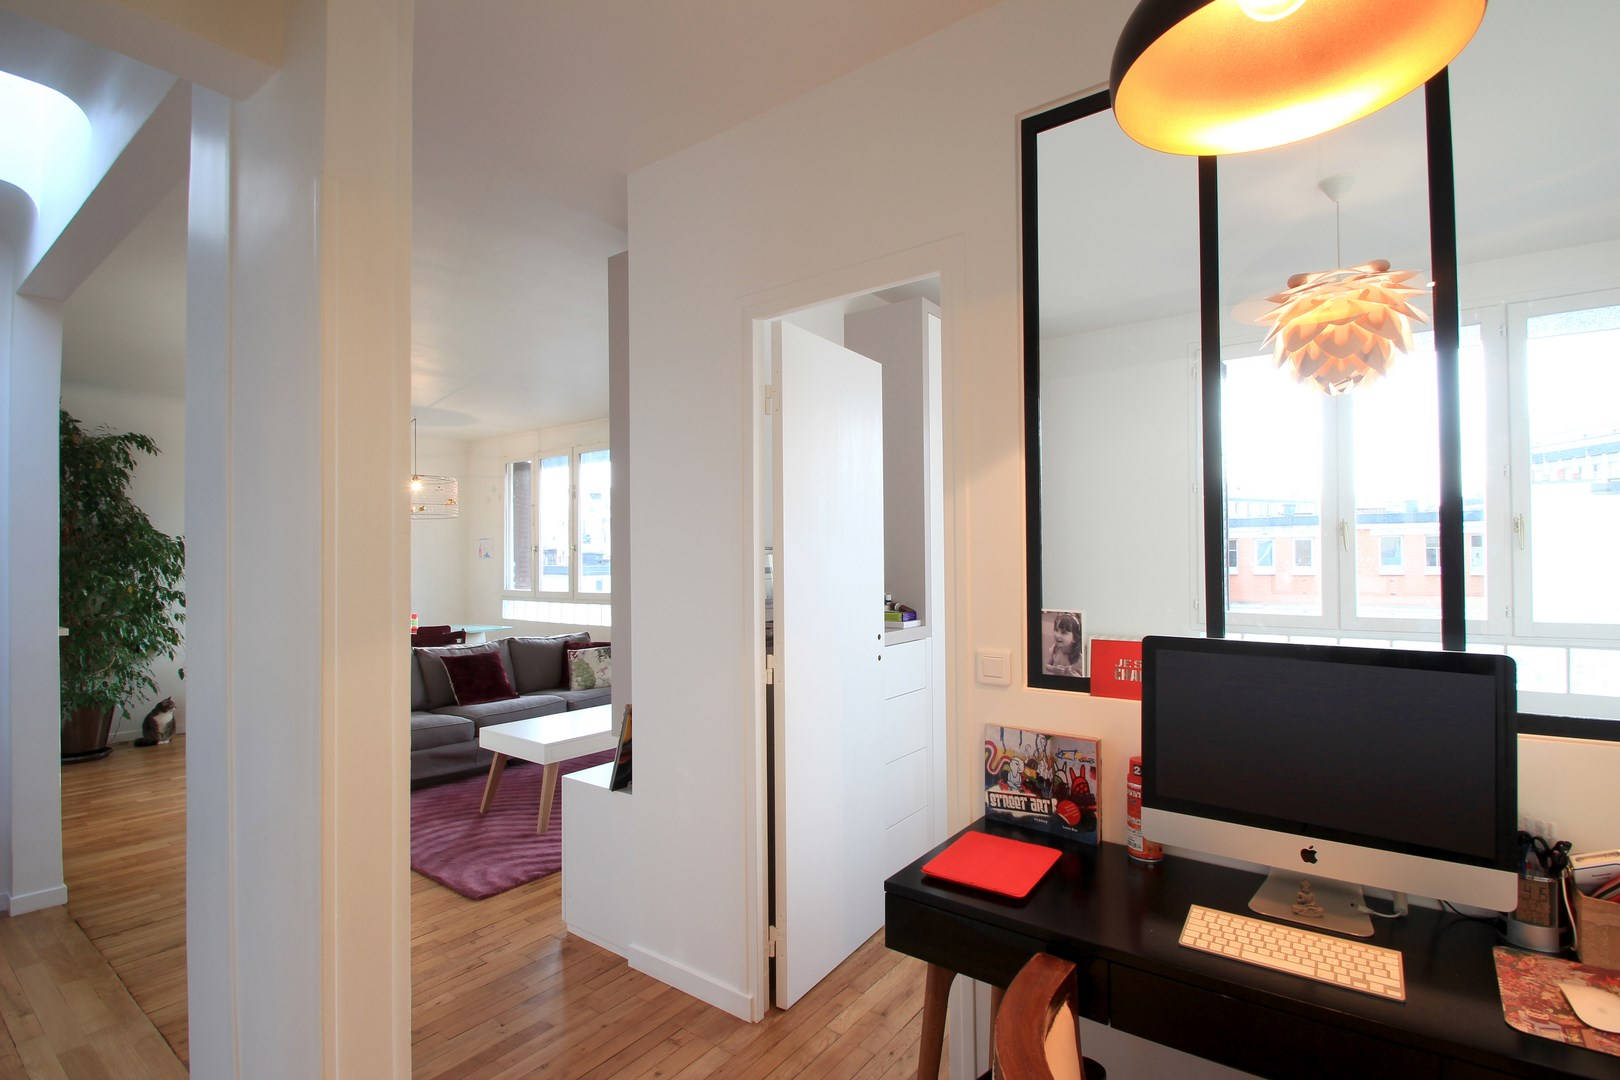 Am nagement chambre dans un cube paris buttes aux cailles - Amenagement salon contemporain ...